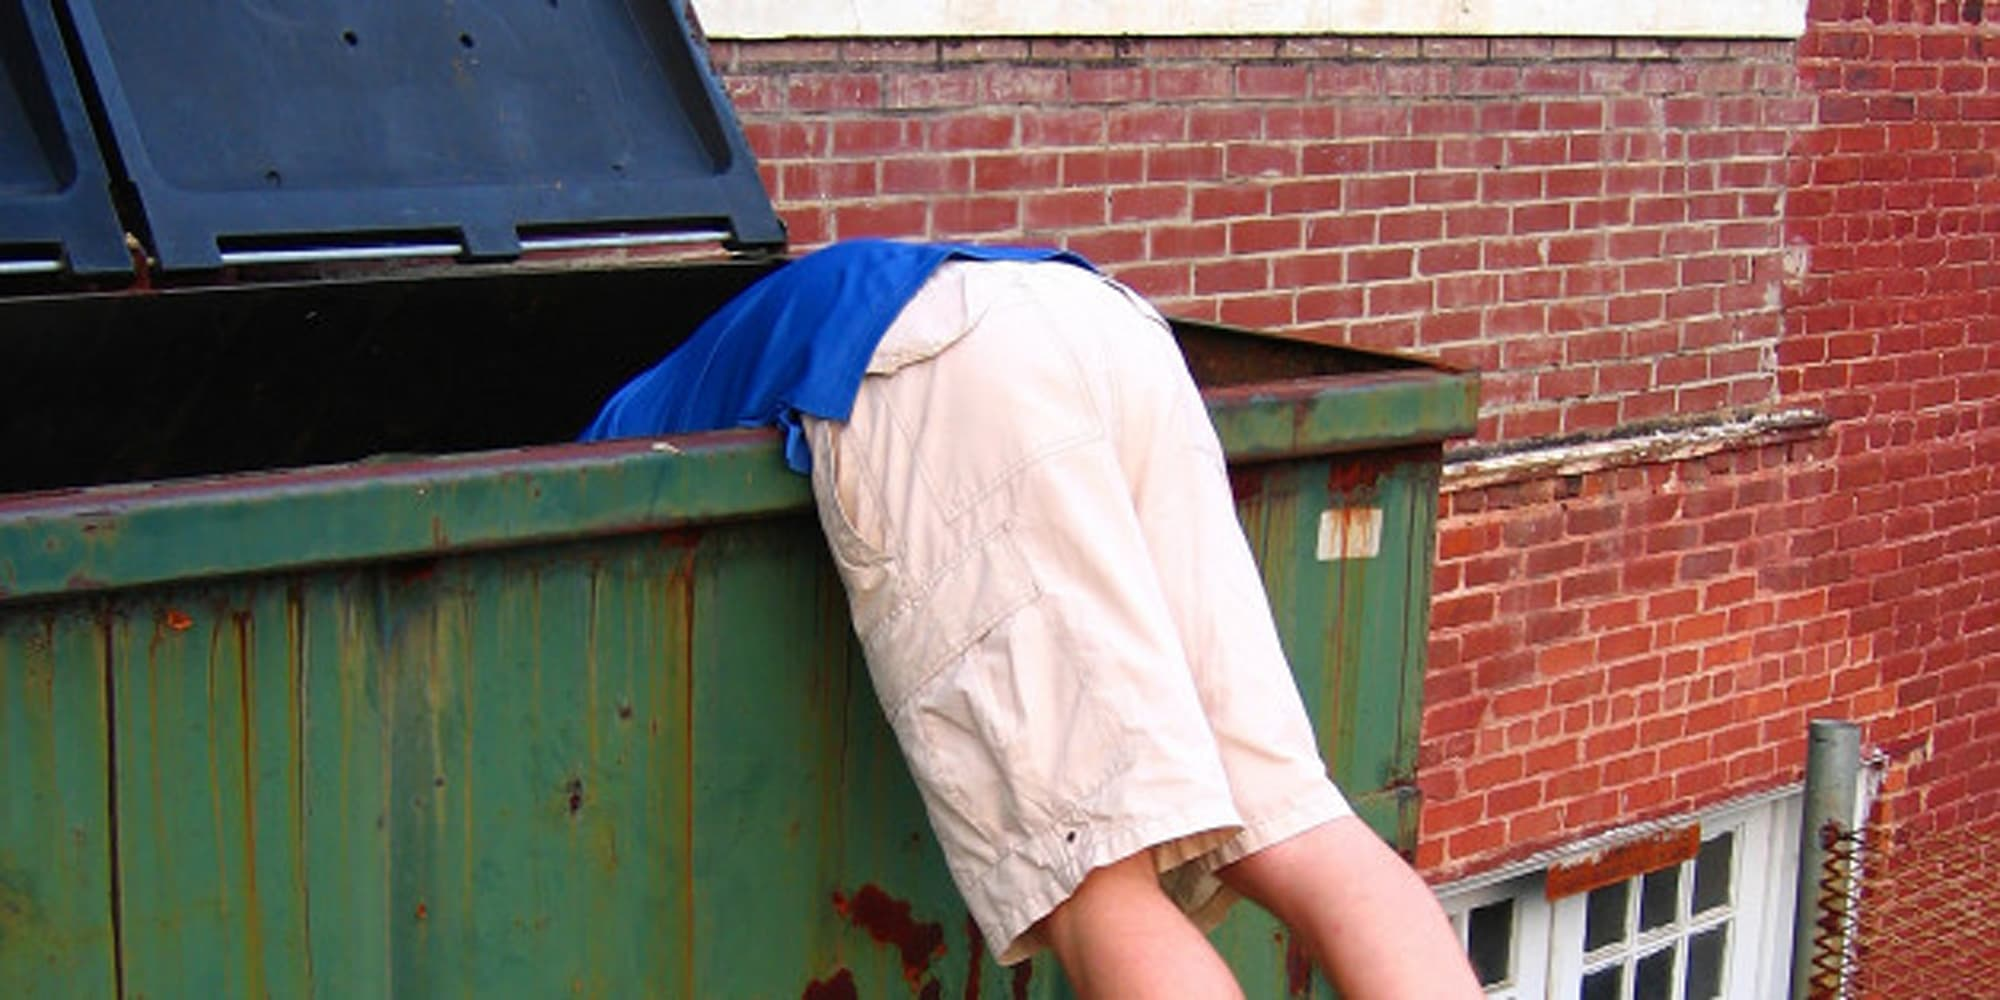 dumpster diving should be legal